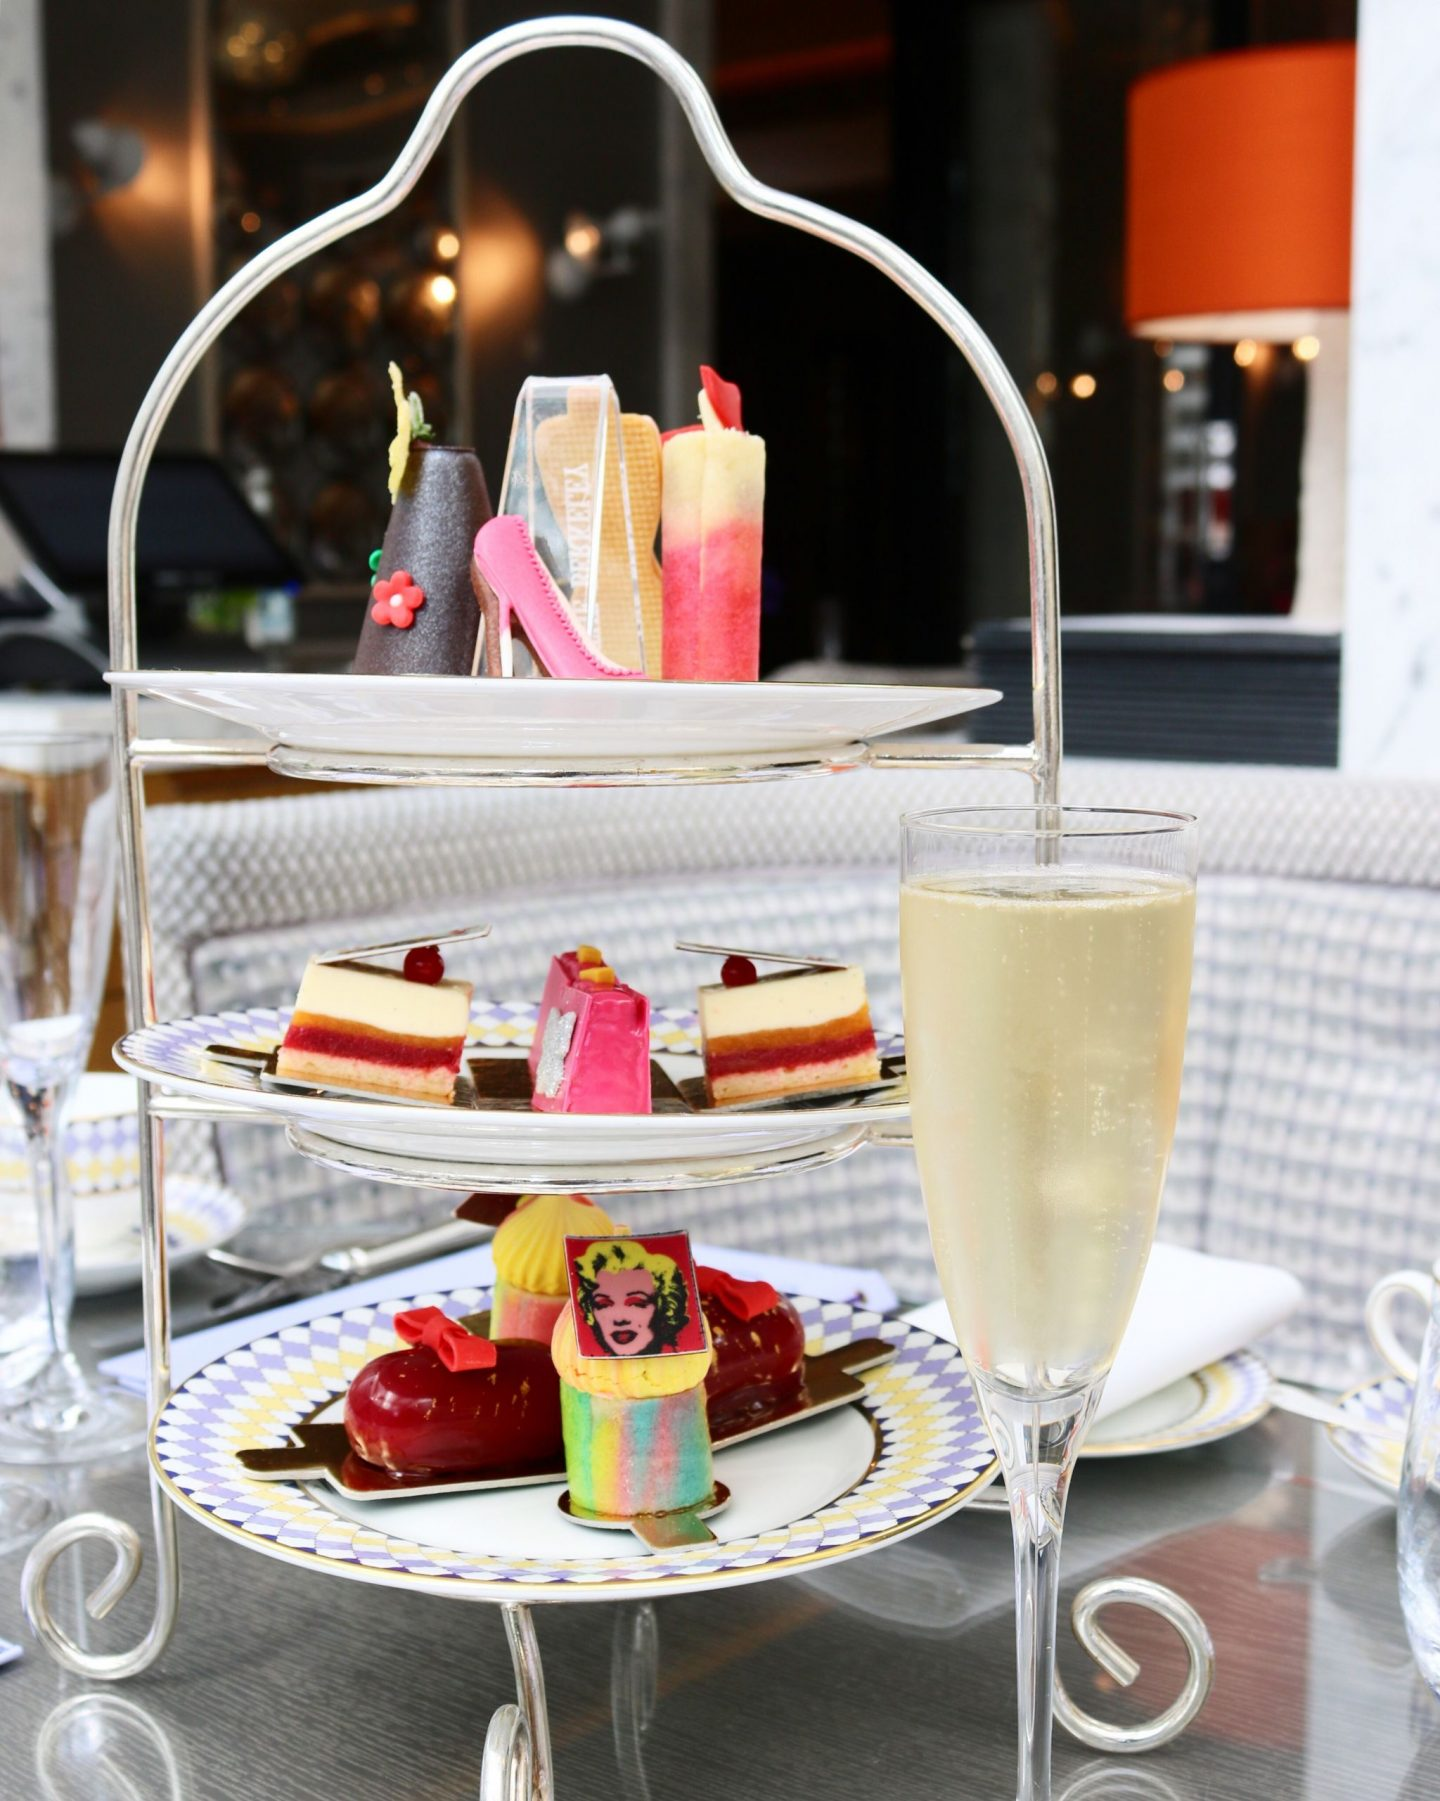 Afternoon Tea: Prêt-à-Portea at The Berkeley, Spring/Summer 2018